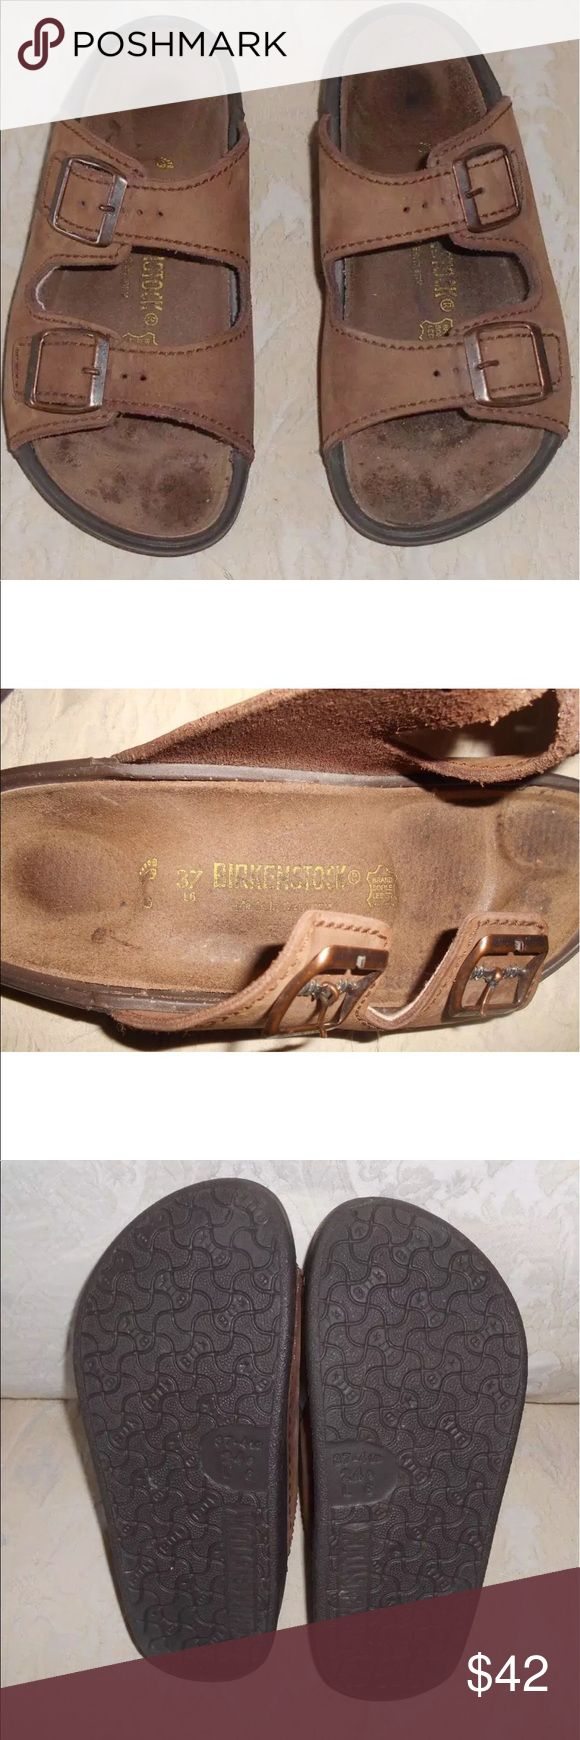 Birkenstock two strap sandals Pre-owned brown suede leather sandals size 37, brown one piece rubber bottoms, leather insoles , adjustable 2 buckle straps , made in Germany Birkenstock Shoes Sandals